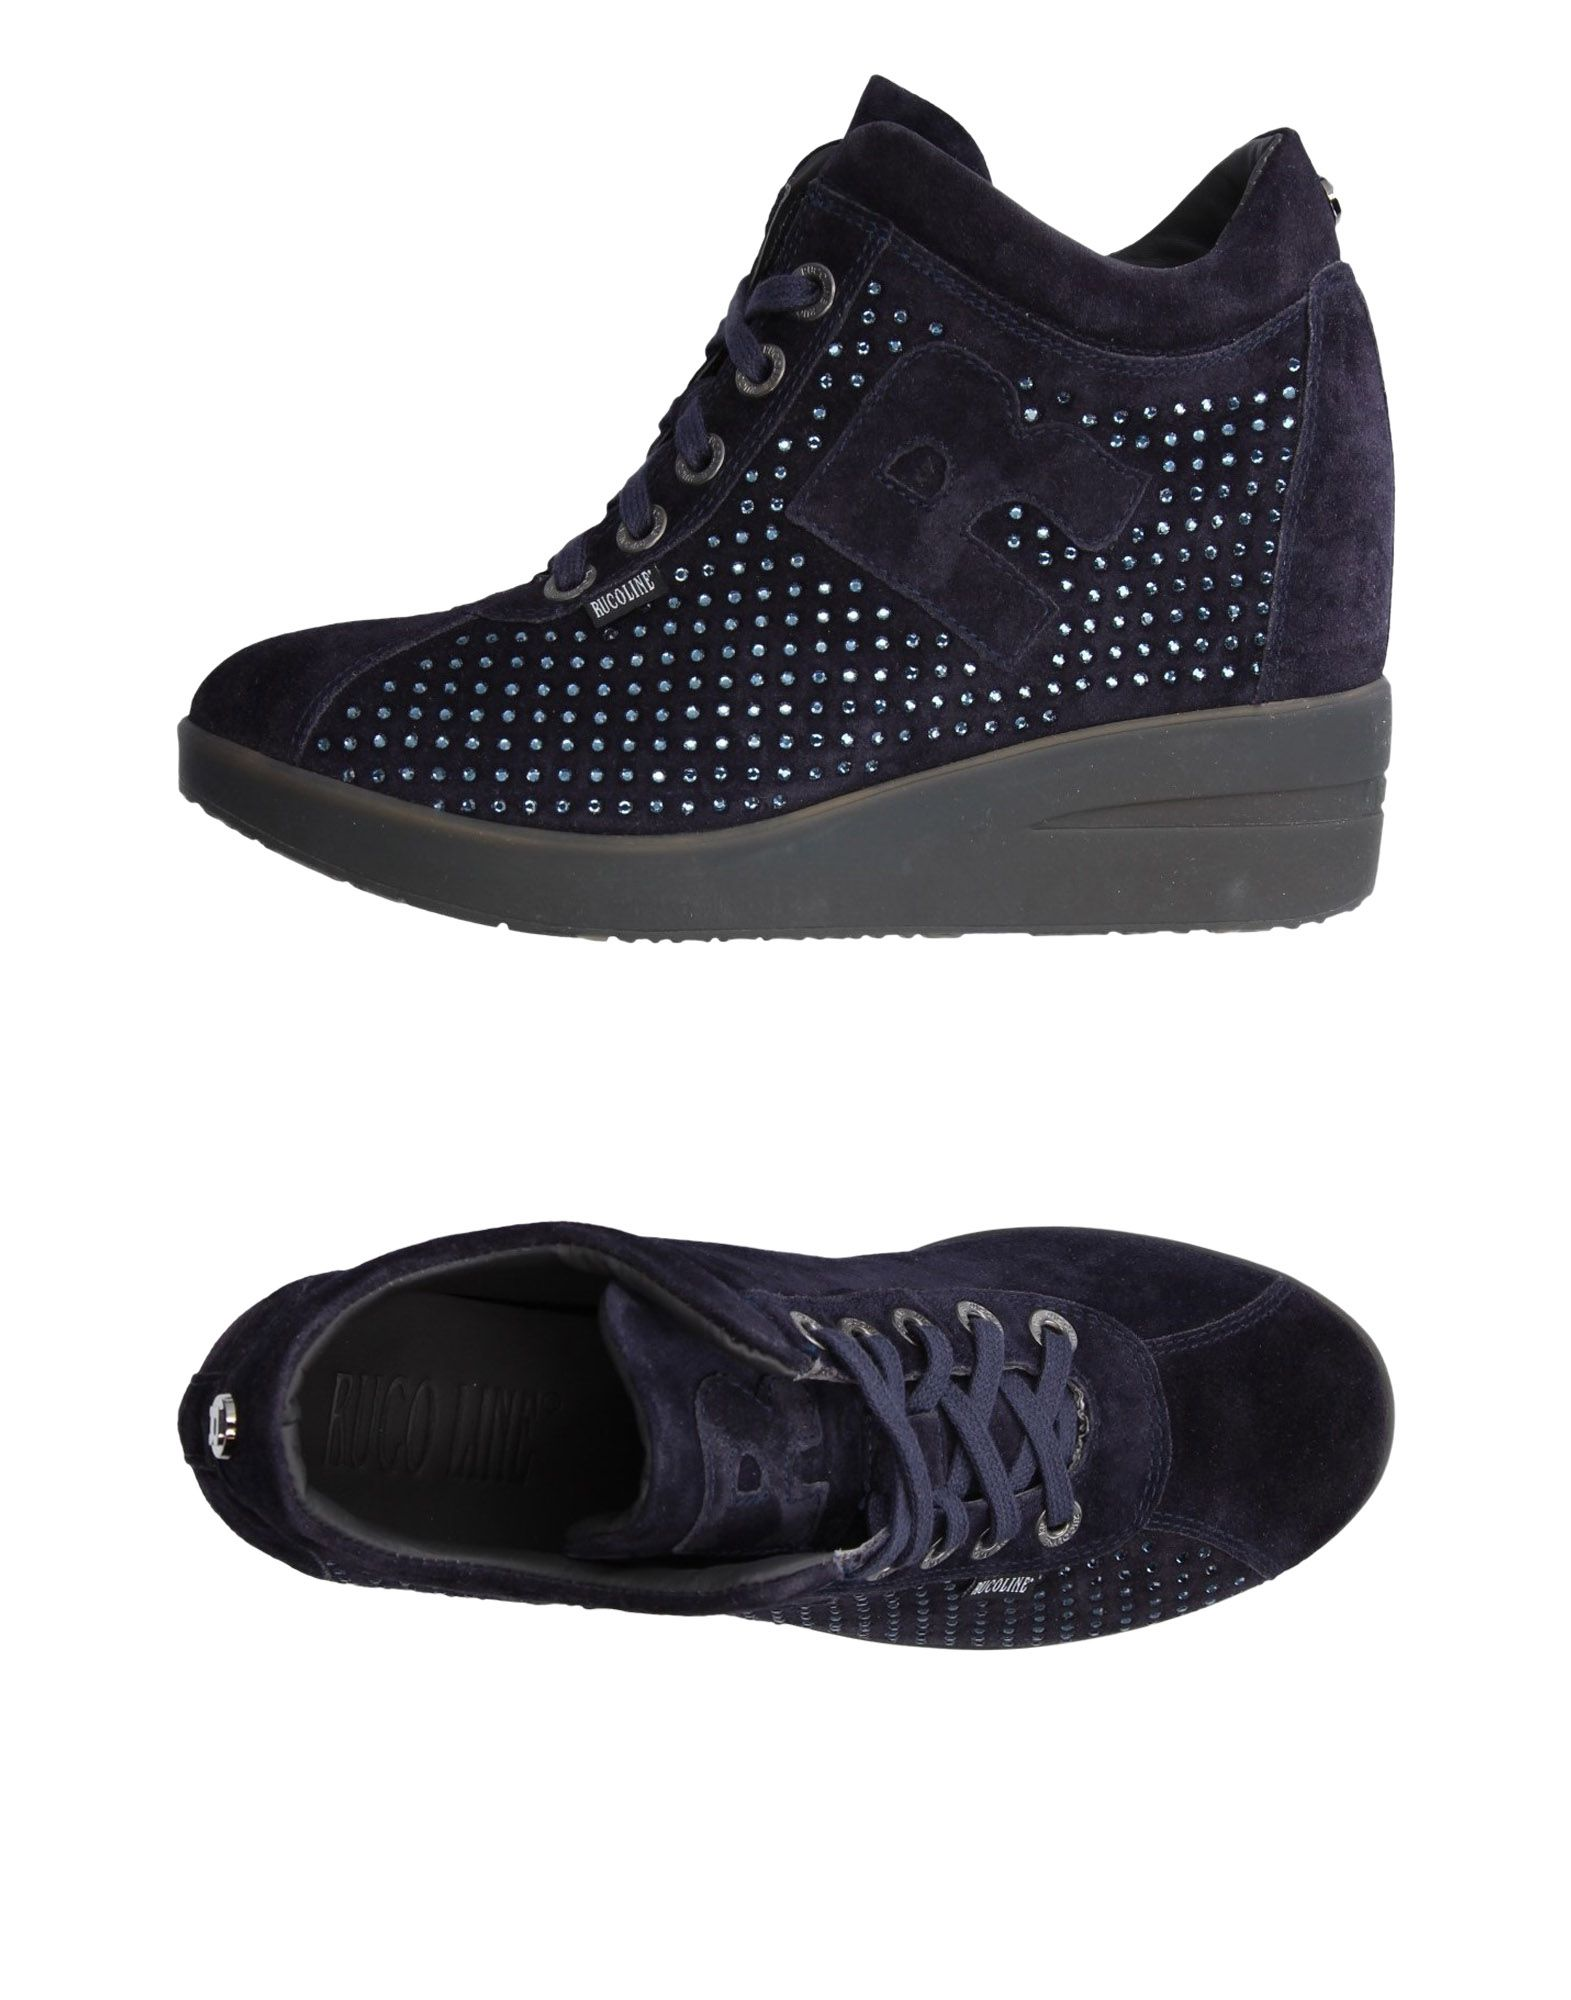 Ruco on Line Sneakers - Women Ruco Line Sneakers online on Ruco  Australia - 11219106LF 7f88f2